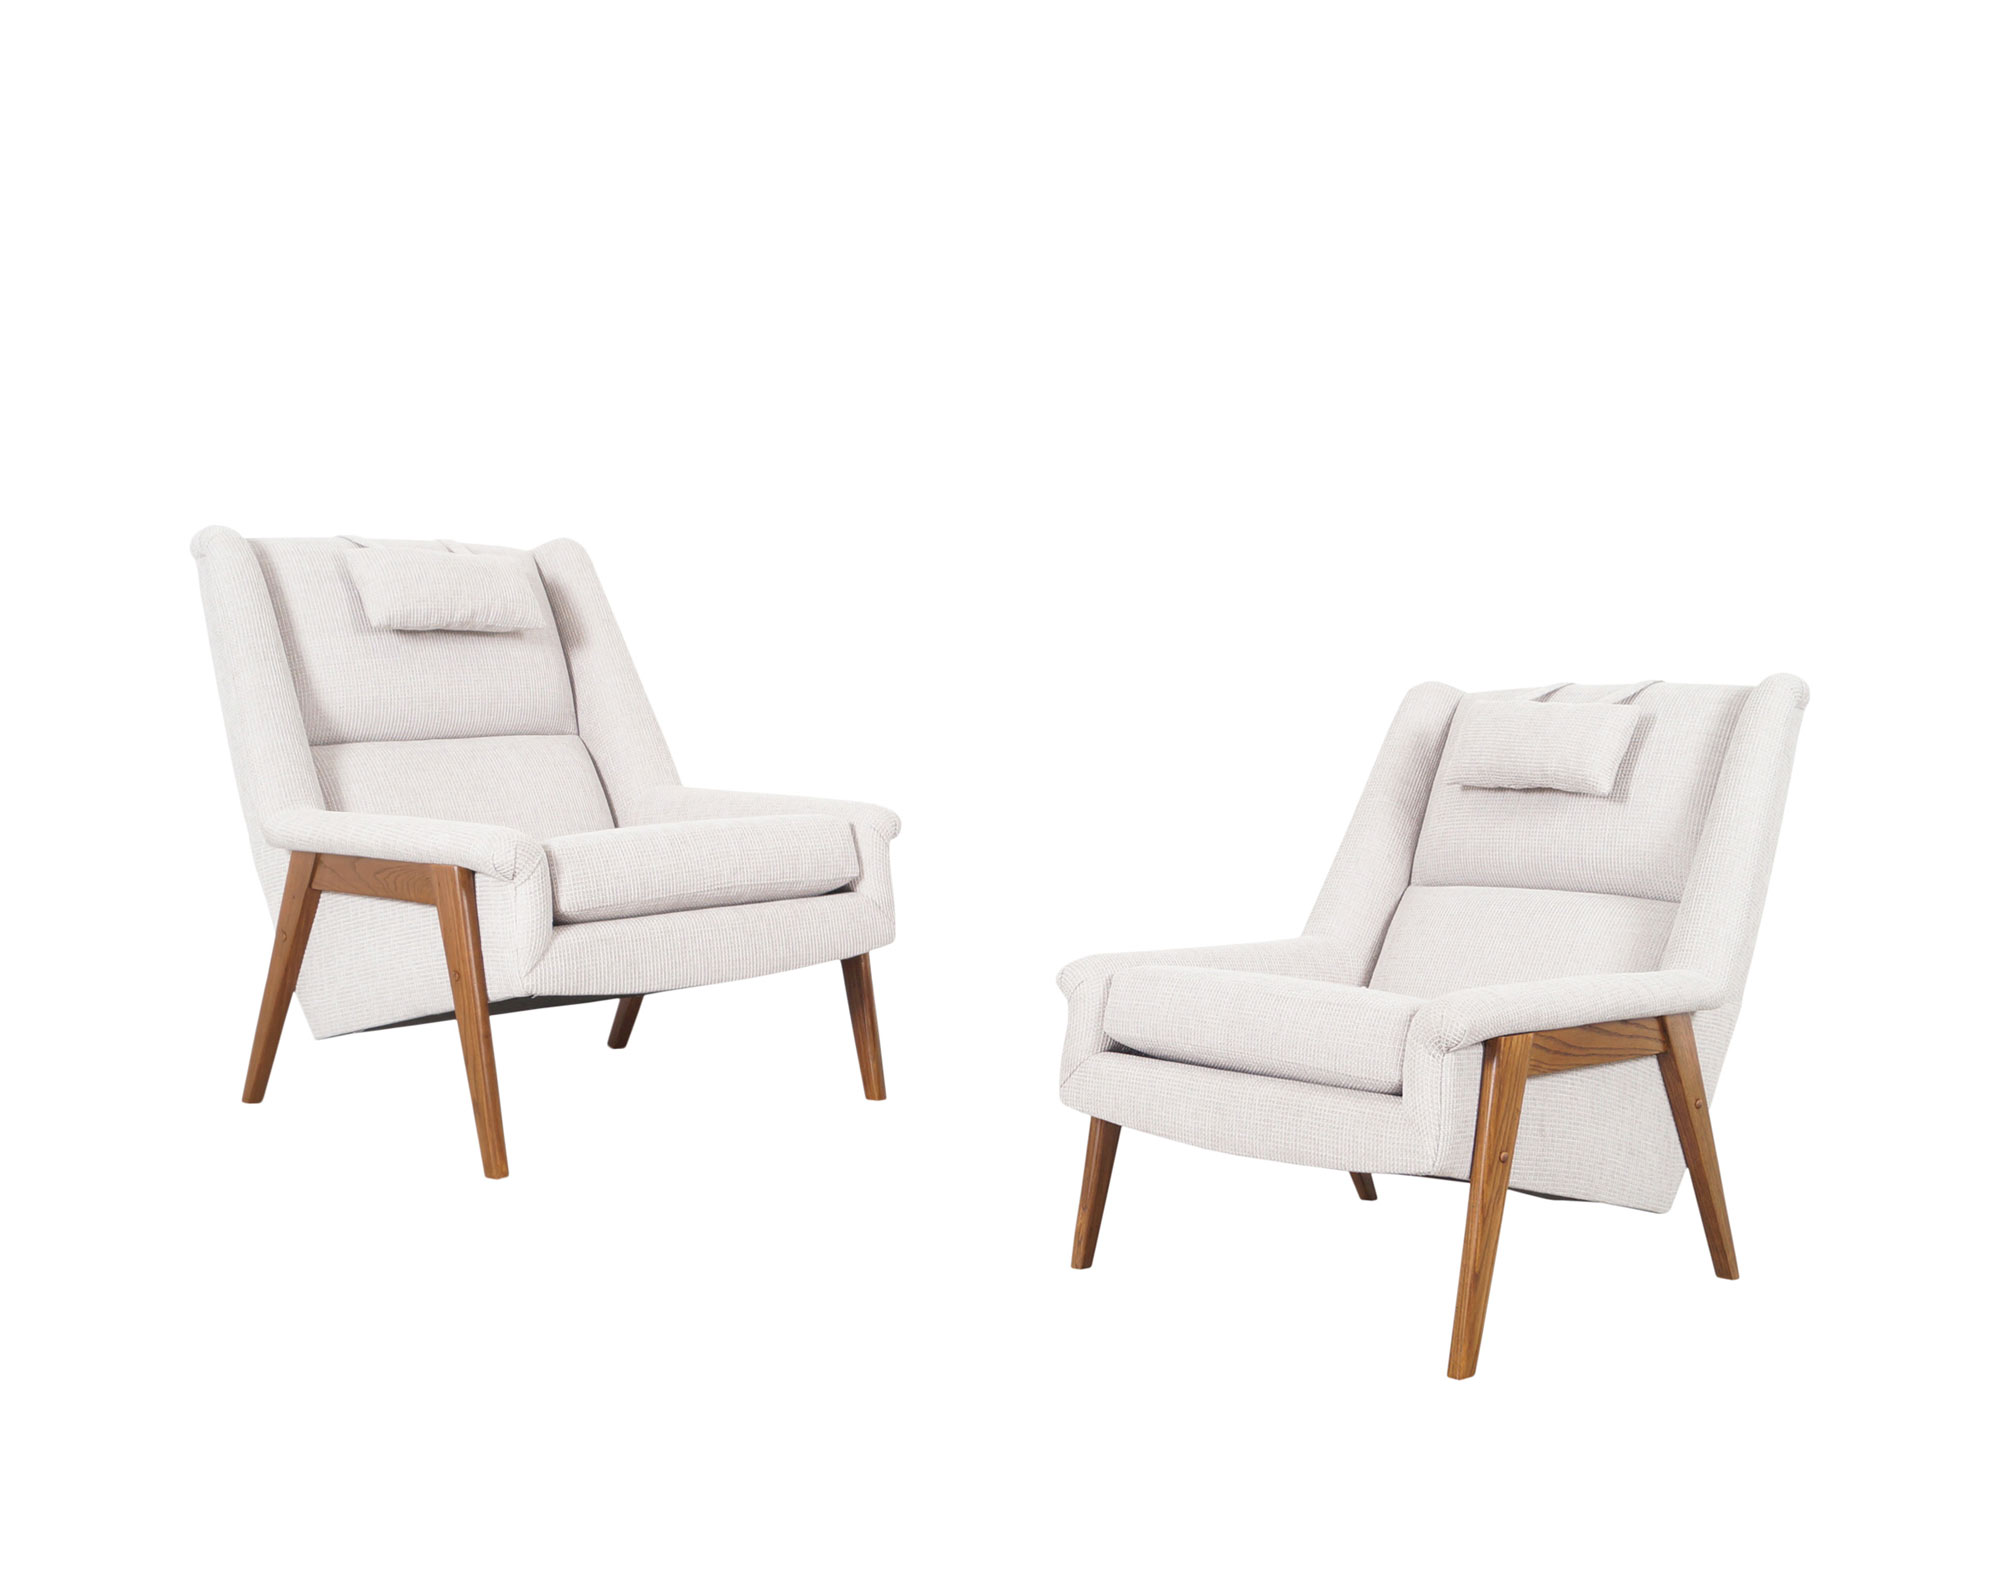 Vintage Walnut Lounge Chairs Attributed to Folke Ohlsson